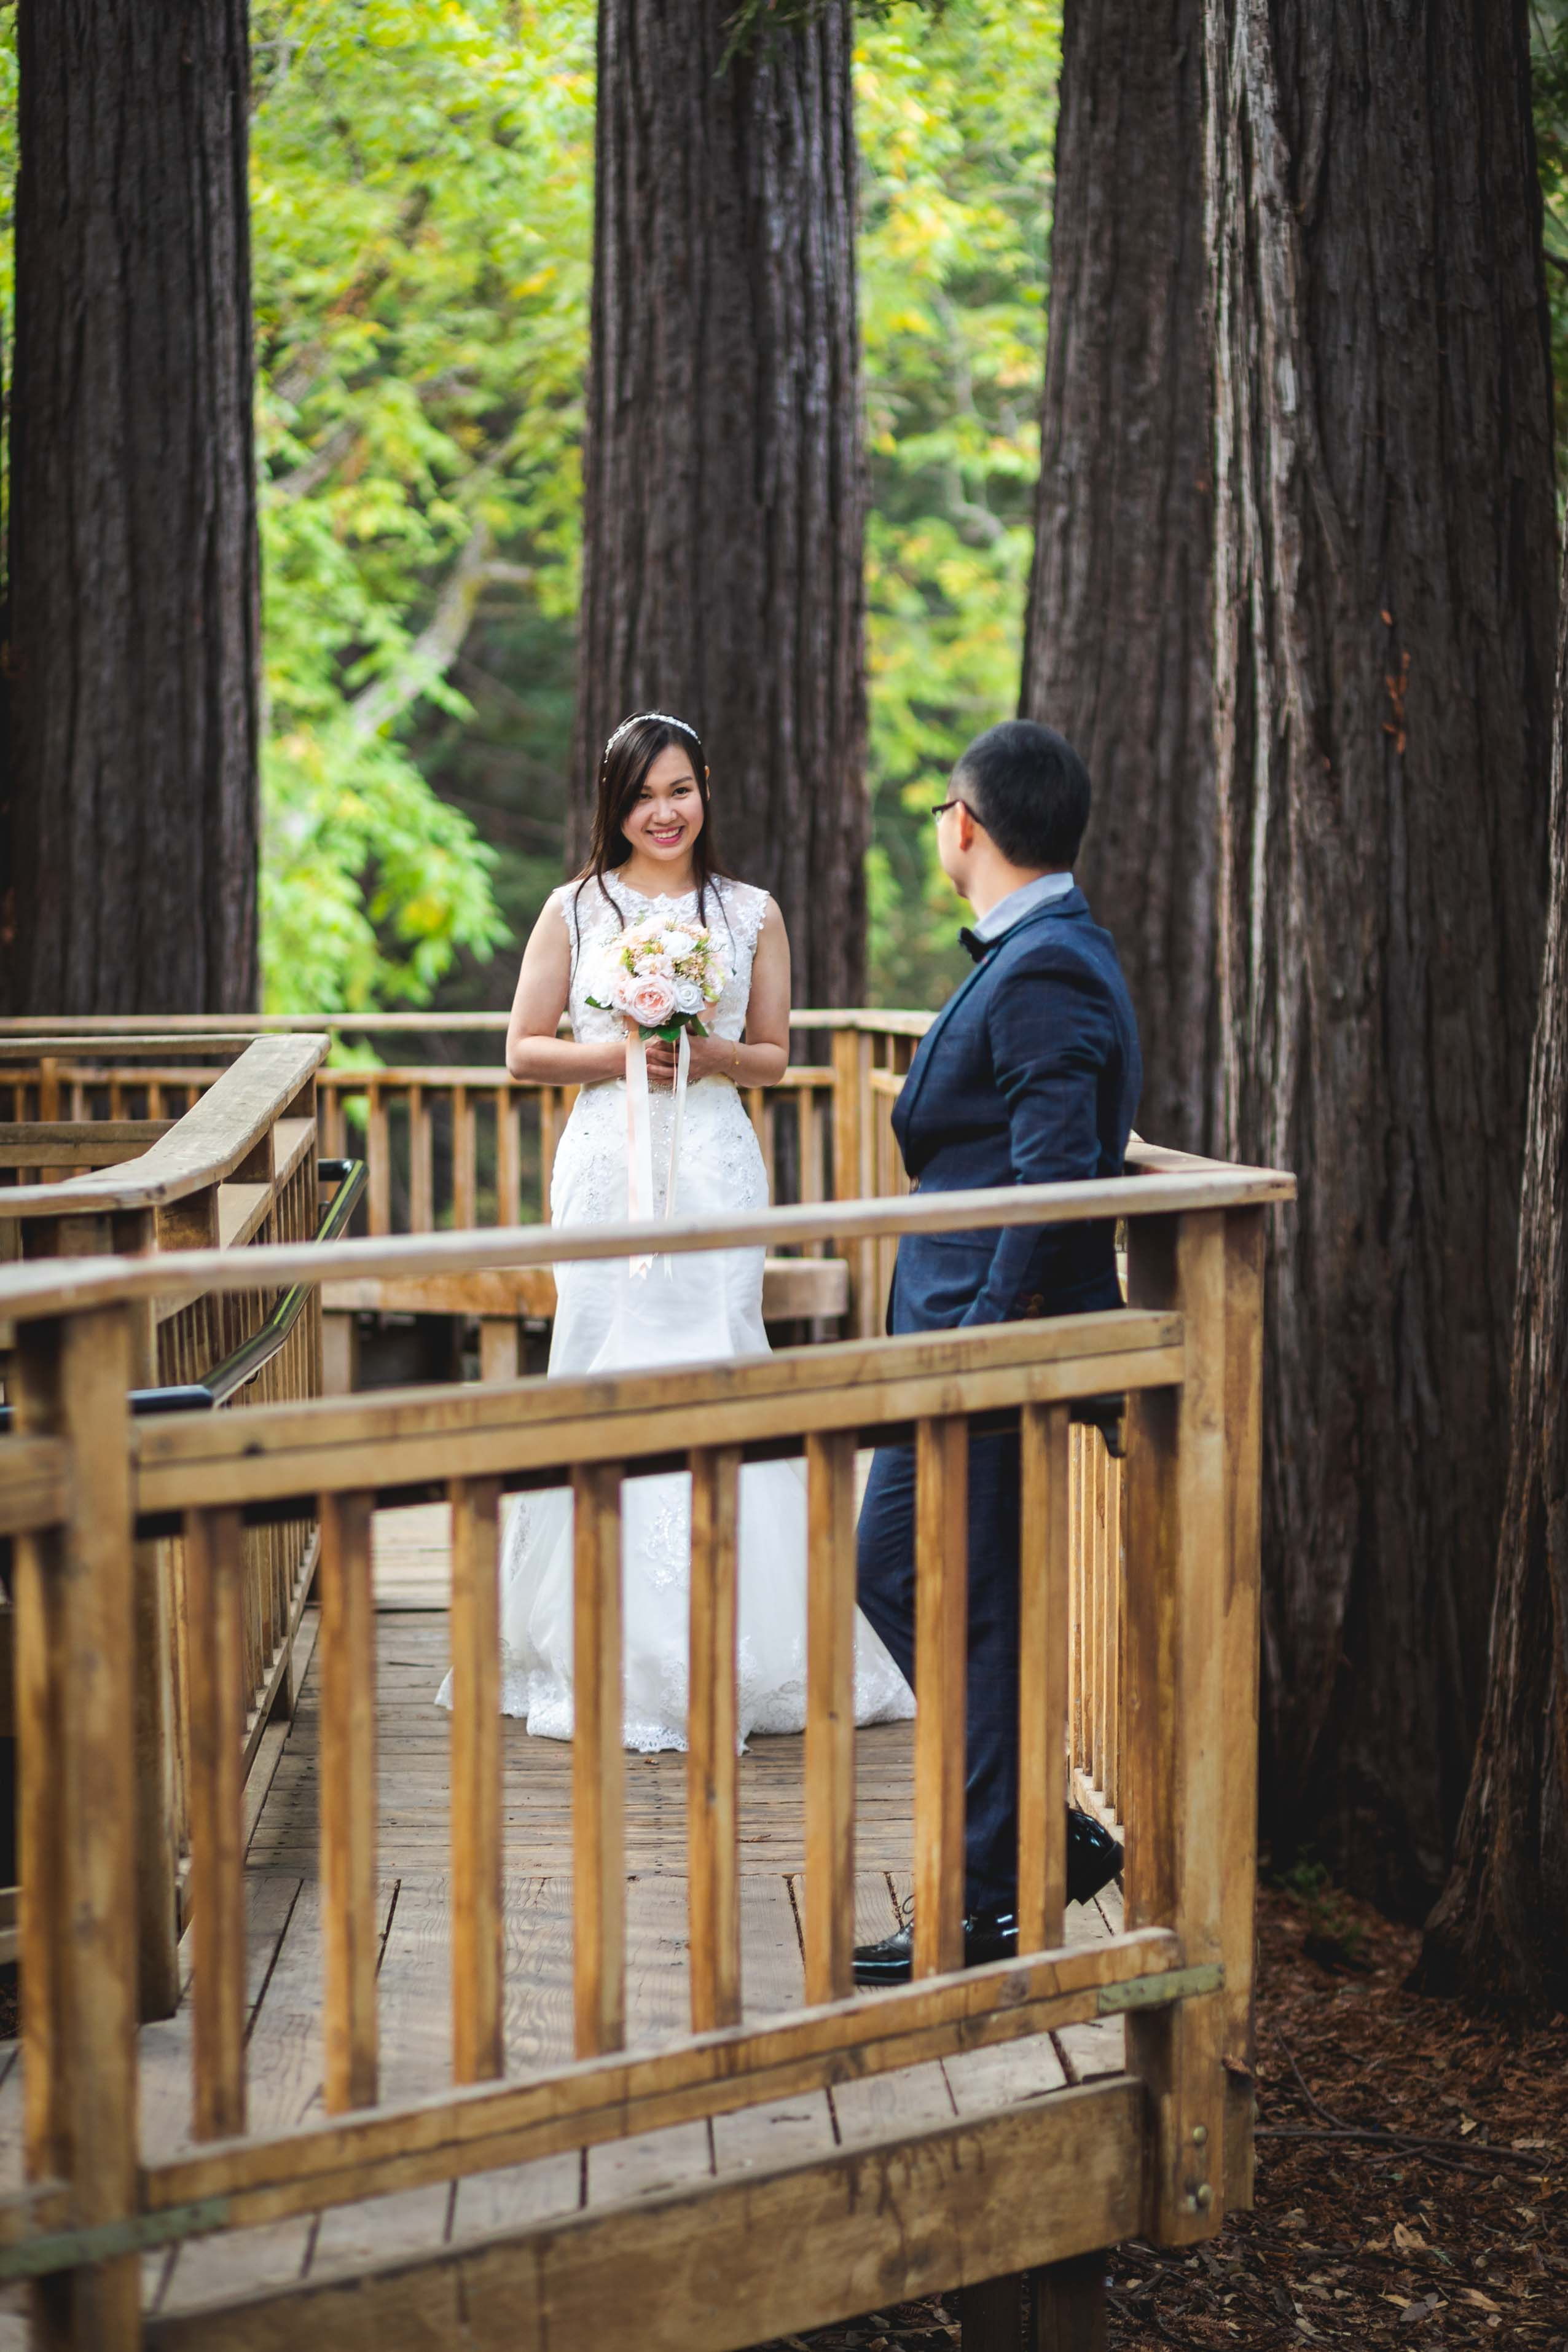 Sanborn county park bride and groom prewedding photo